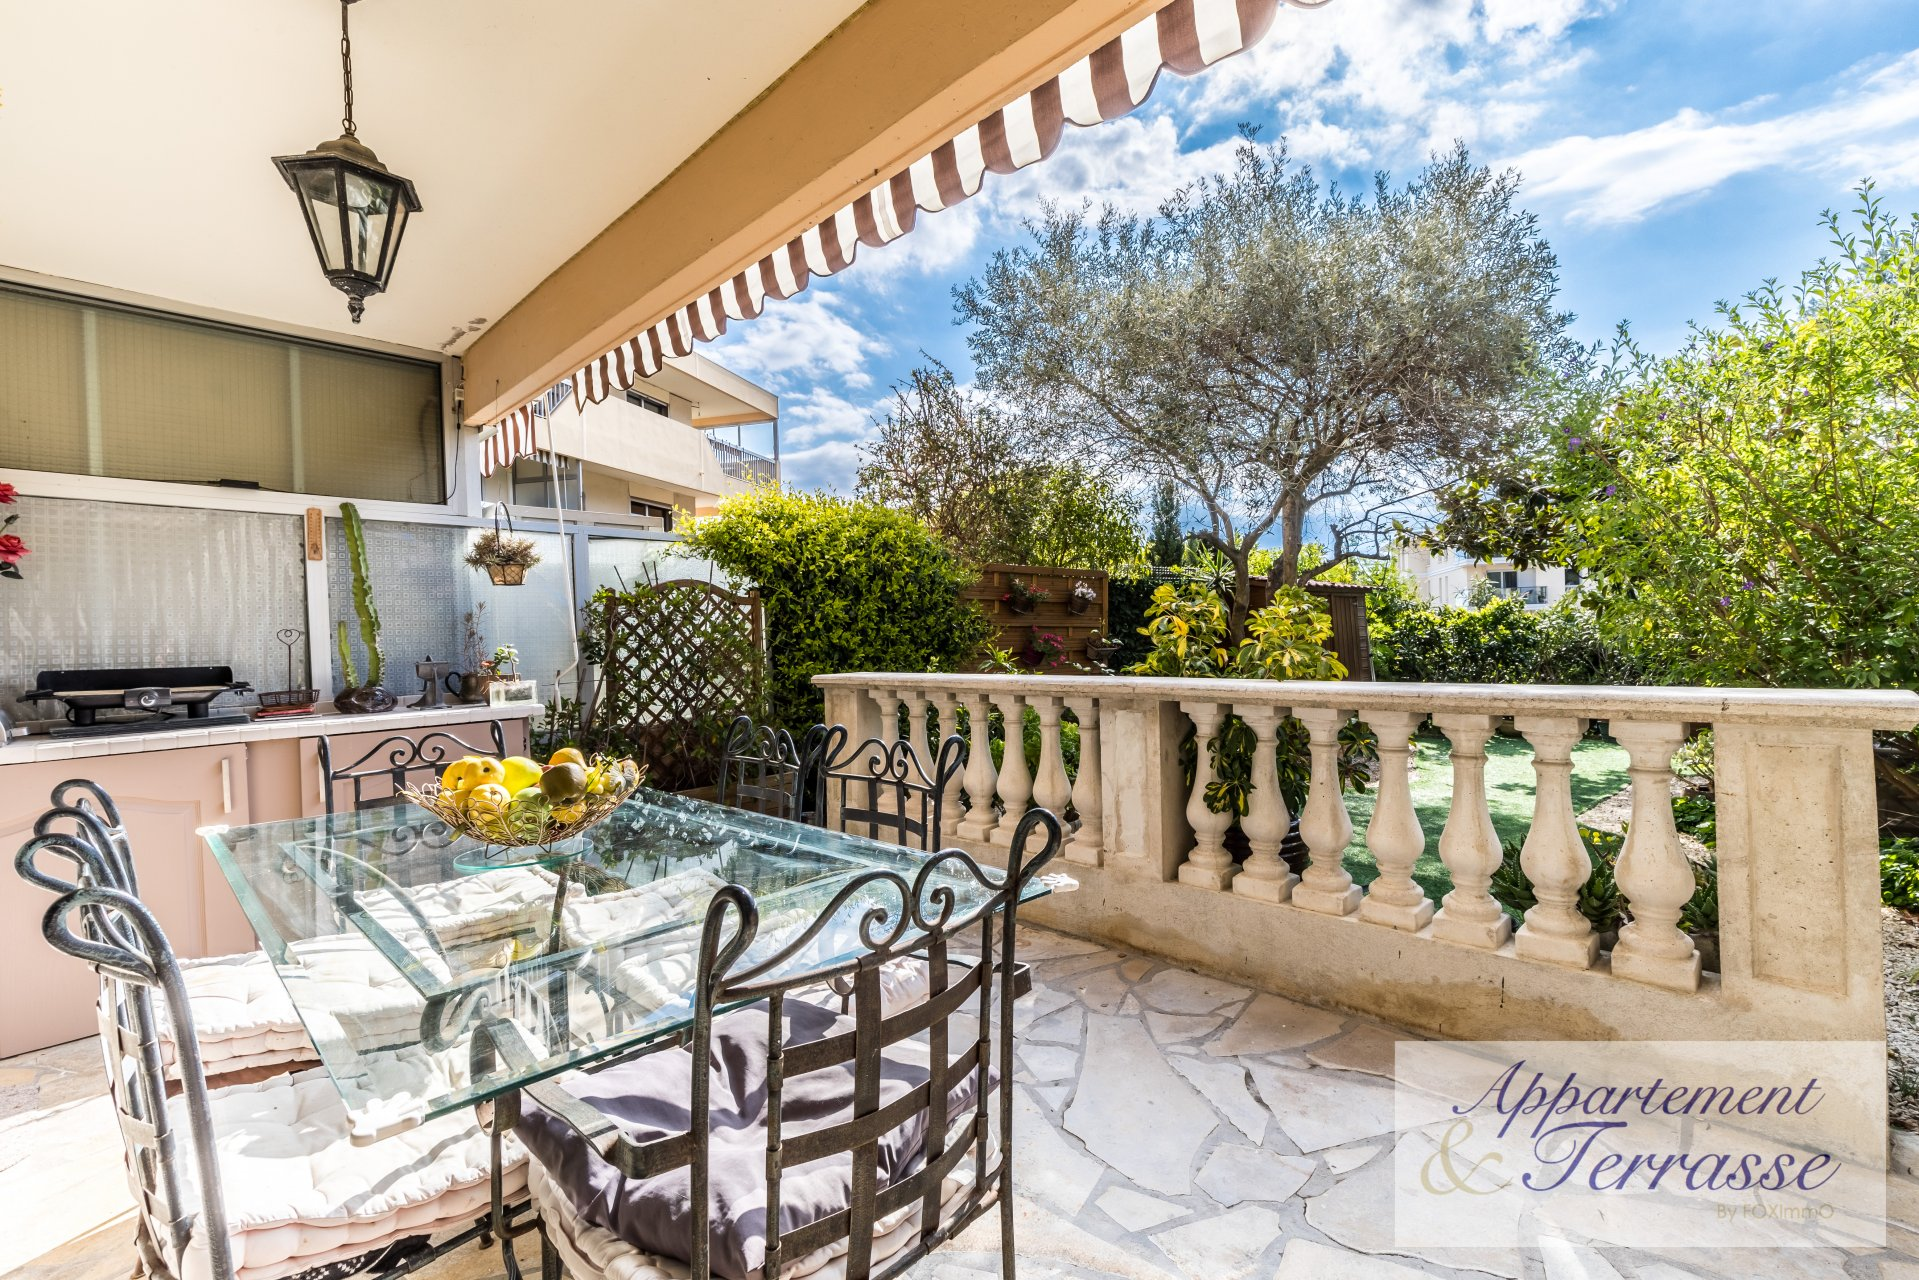 On the French Riviera, in Villeneuve Loubet, close to the sea, nice 4 P on the ground floor with parking